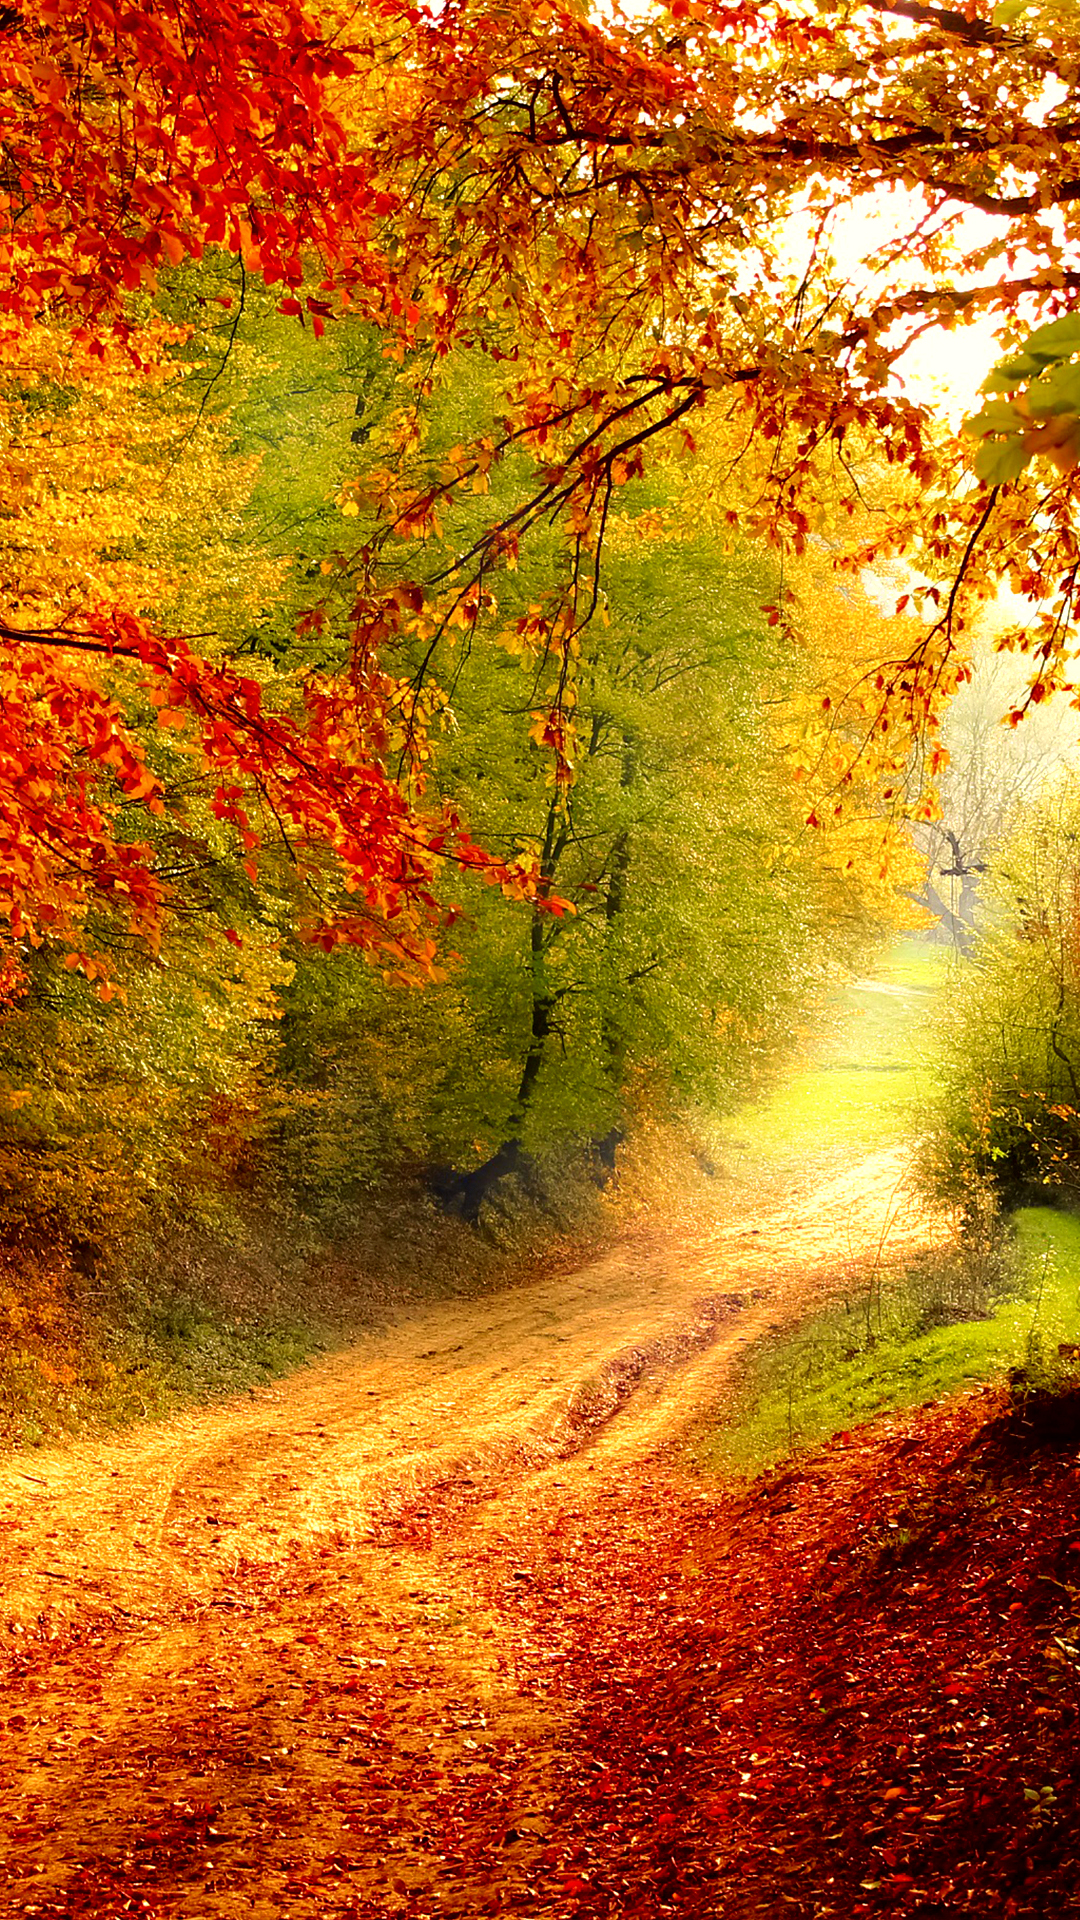 autumn bend hd wallpaper for your mobile phone